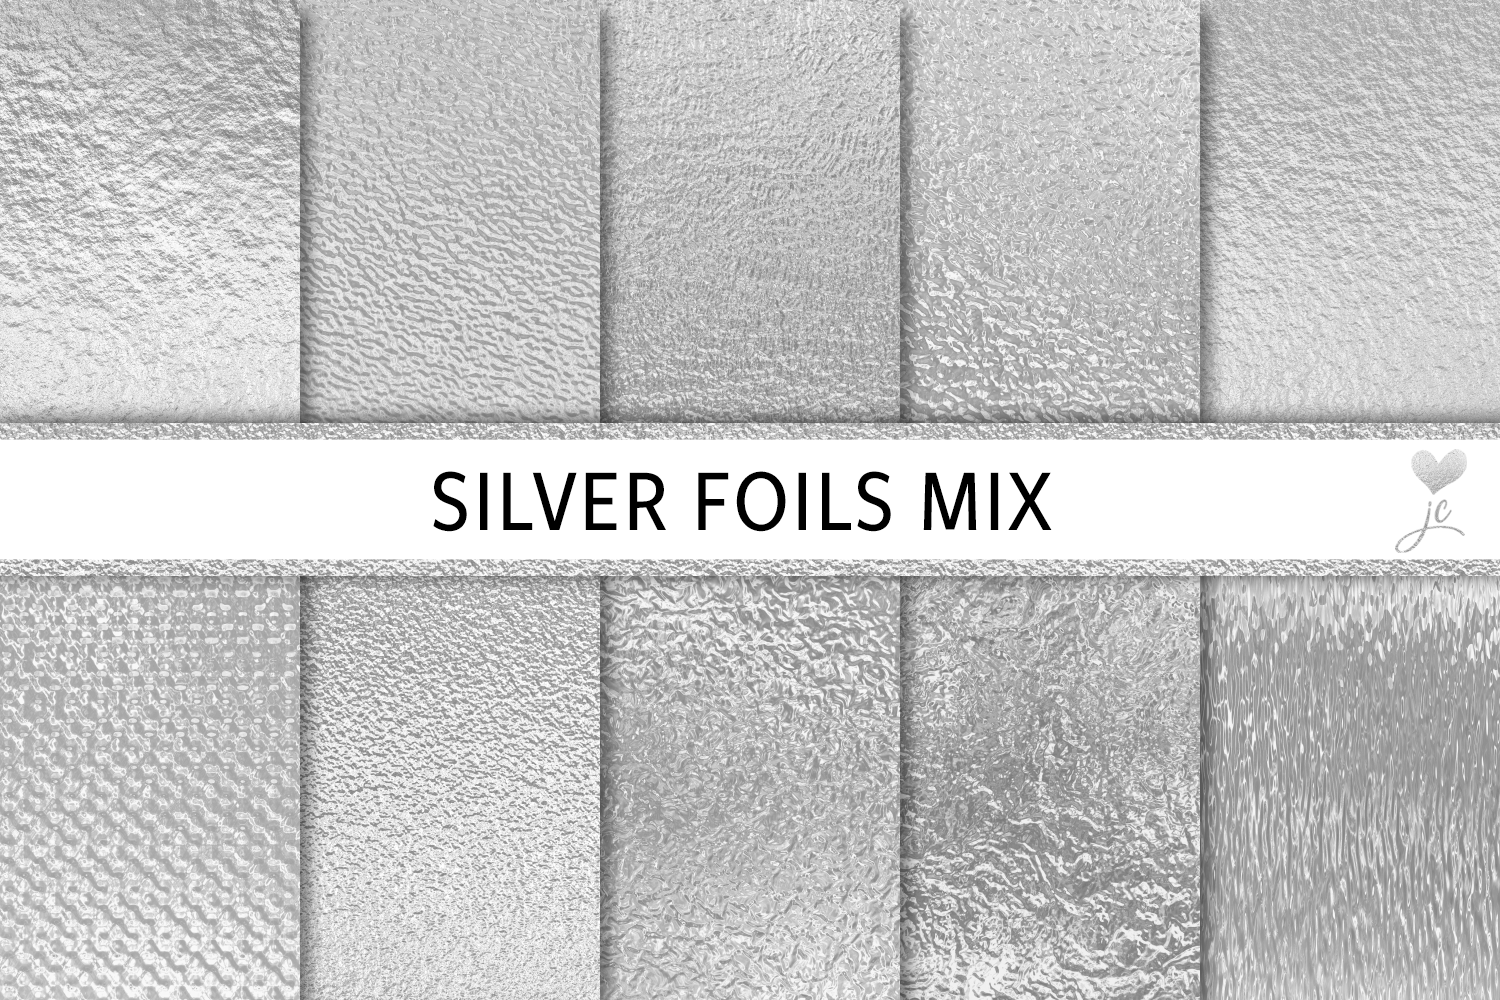 Download Free Silver Foils Mix Graphic By Juliecampbelldesigns Creative Fabrica for Cricut Explore, Silhouette and other cutting machines.